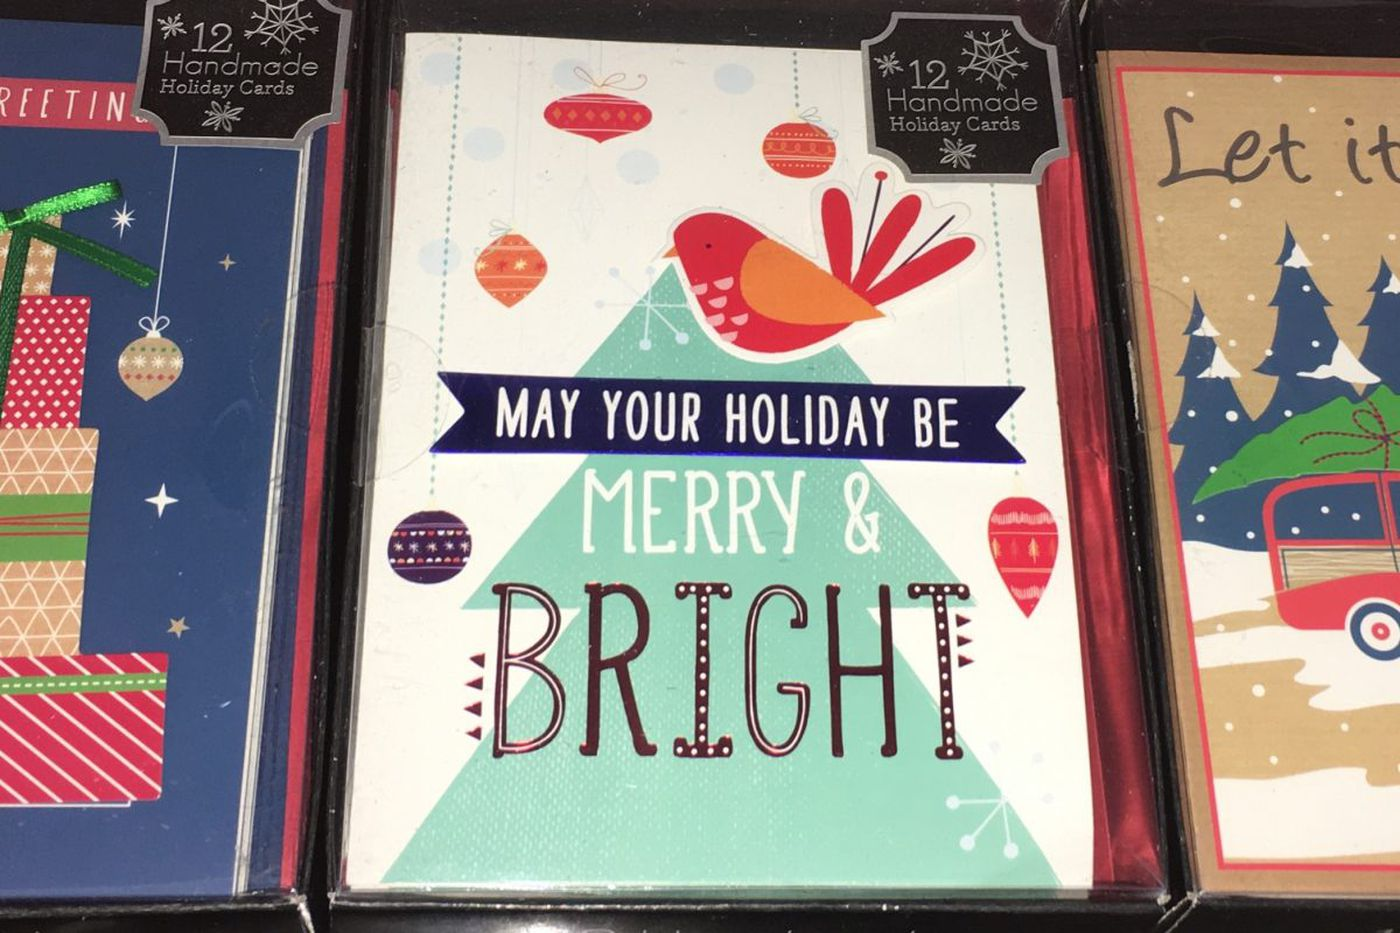 For a card person, it's nice to see Christmas cards surviving | Stu Bykofsky